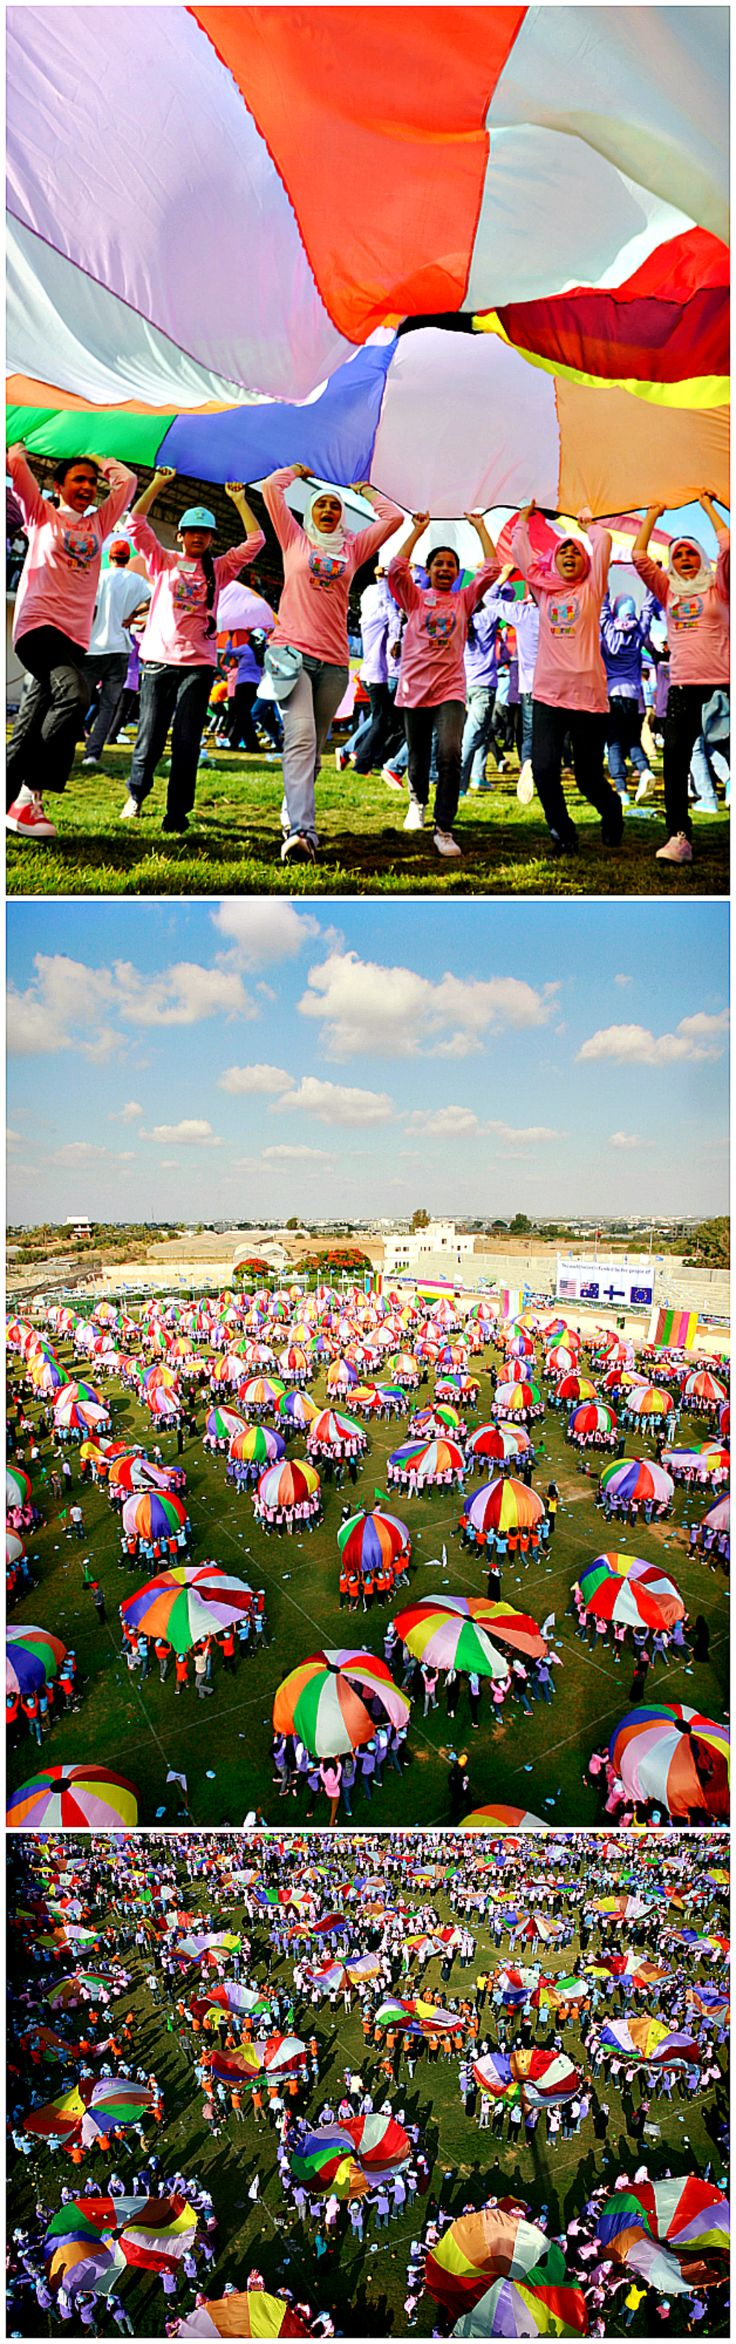 The most people playing parachute is 3,520 with 176 parachutes and was achieved by children from the Gaza Strip, at the Khan Younis Stadium, Gaza, on 30 June 2011.  #parachute #games #kids #education #fun #colors #thingstodowithkids #moms #play #outdoors #children